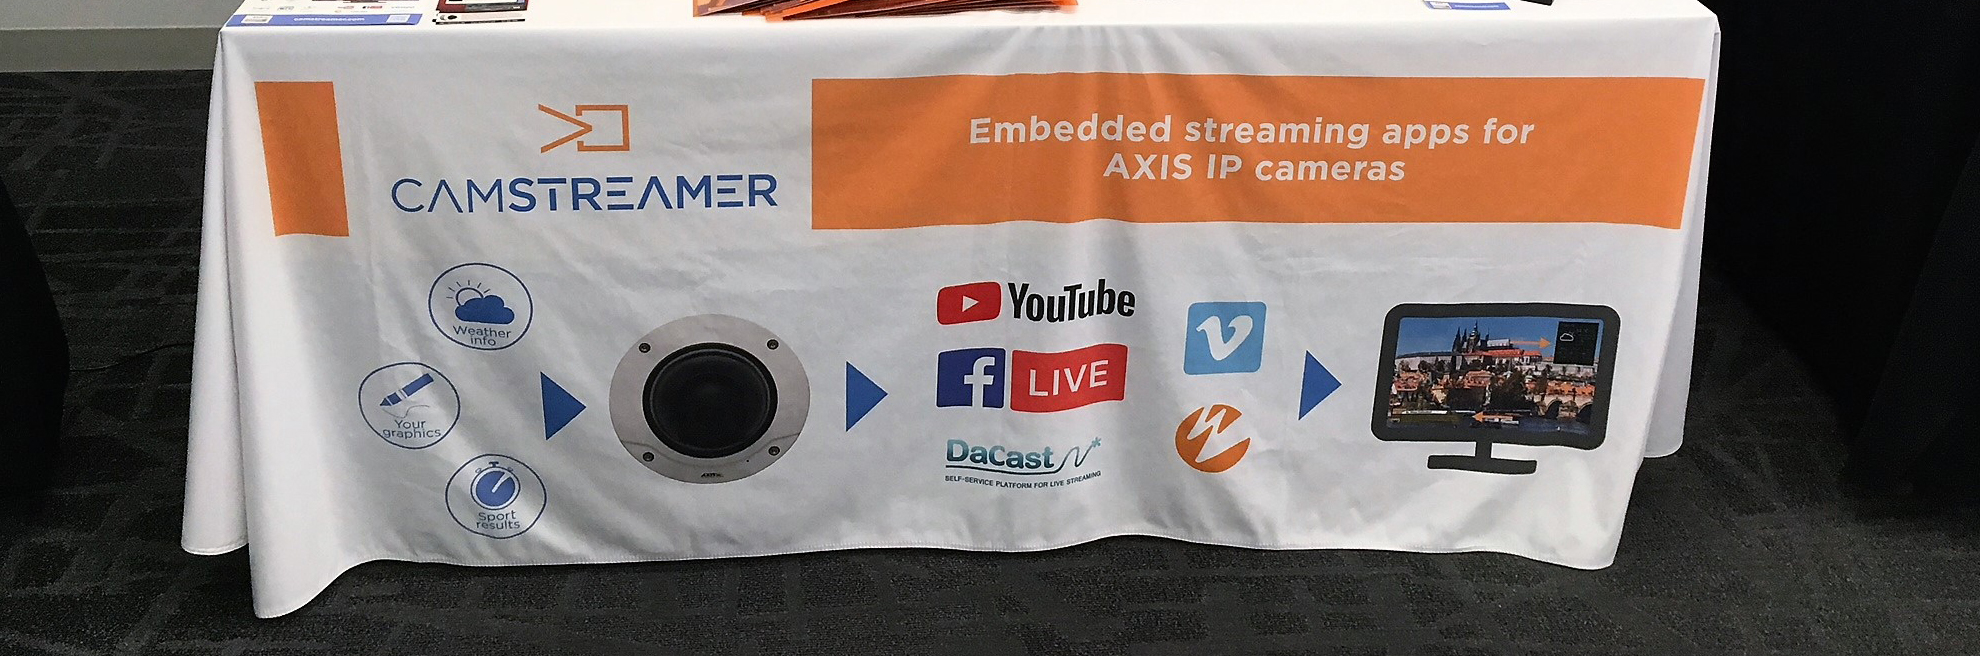 5 reasons we chose to partner with Axis   Blog   CamStreamer